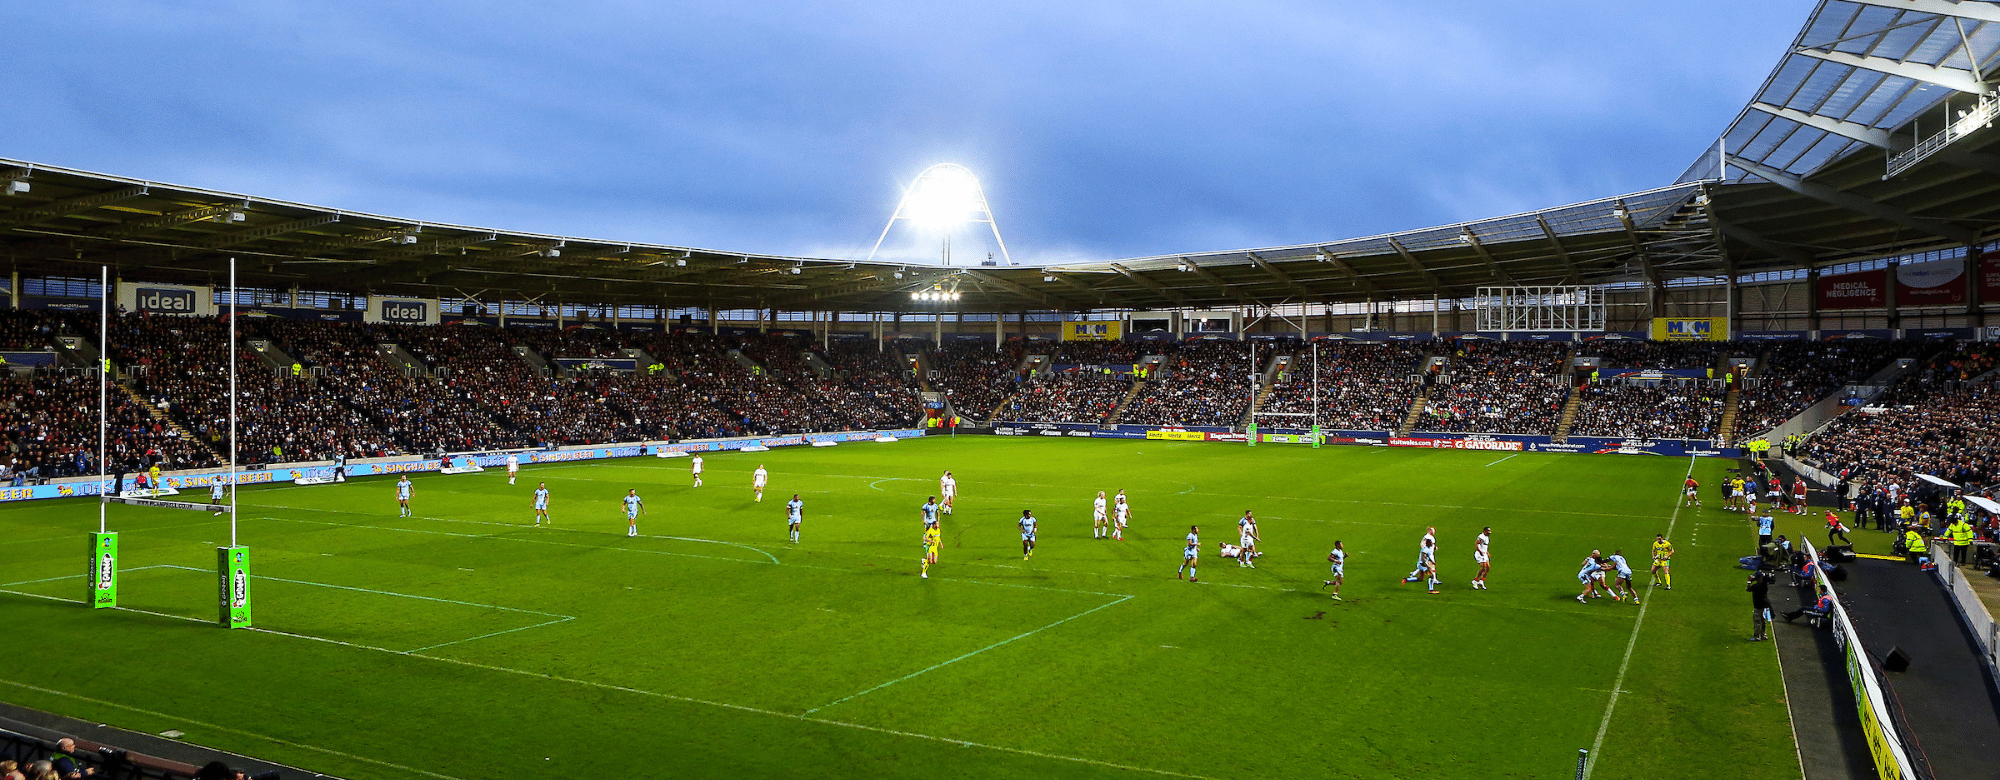 RLWC2021 Tickets On General Sale With 200 Days To Go!